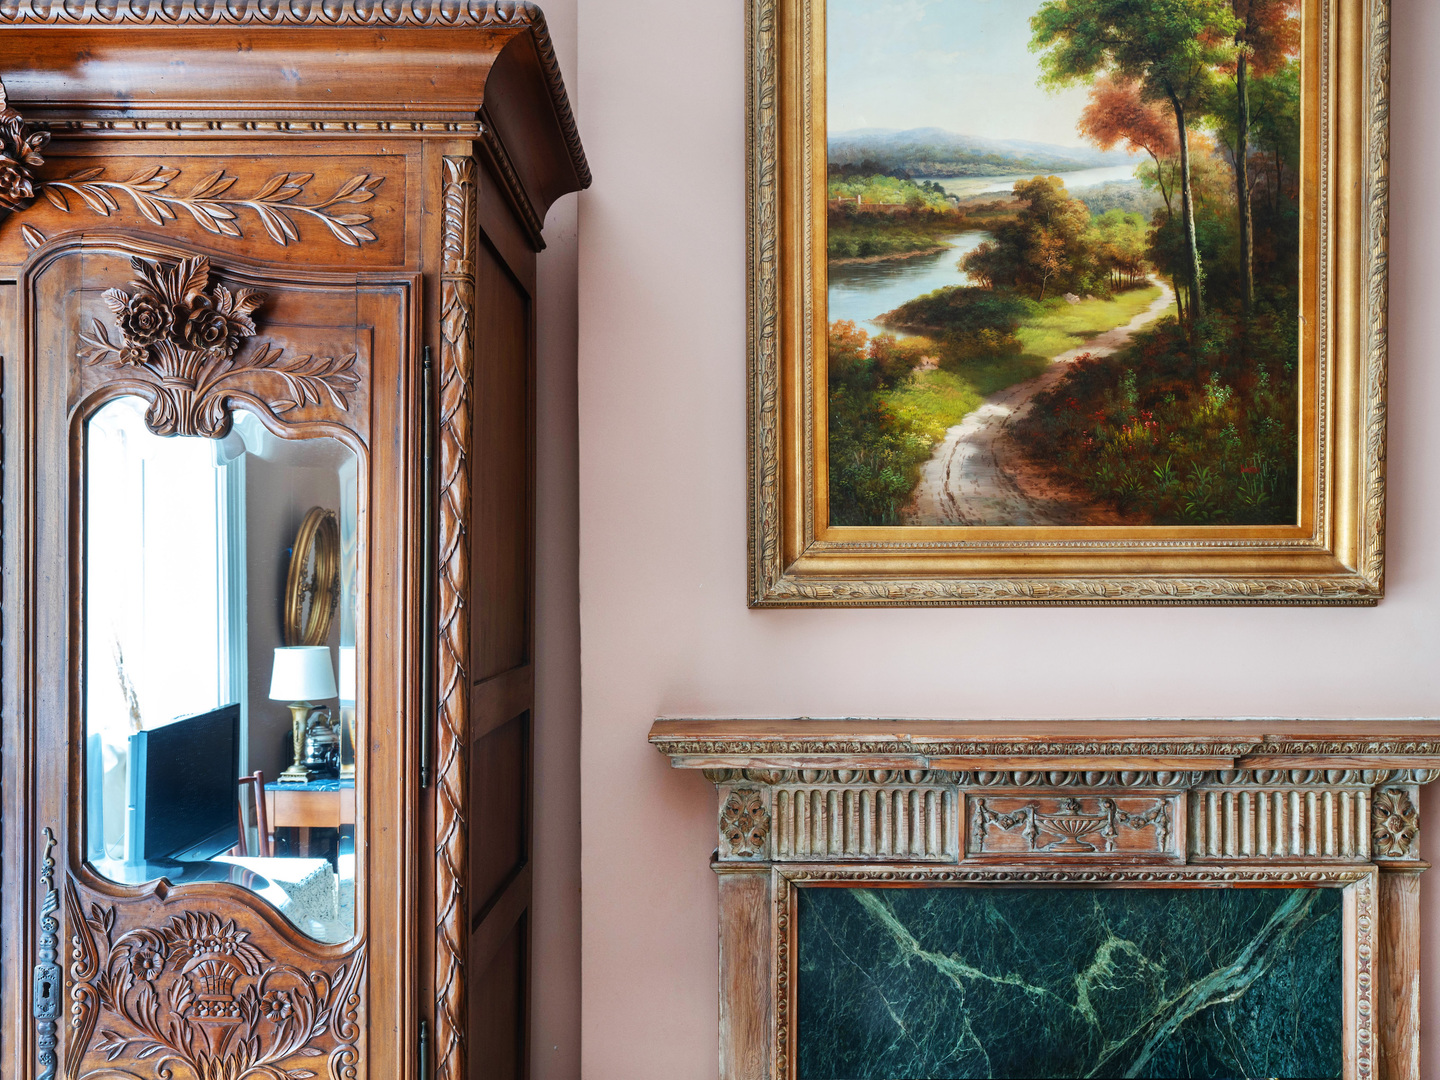 A painting in a frame hanging on a wall at 1871 House.